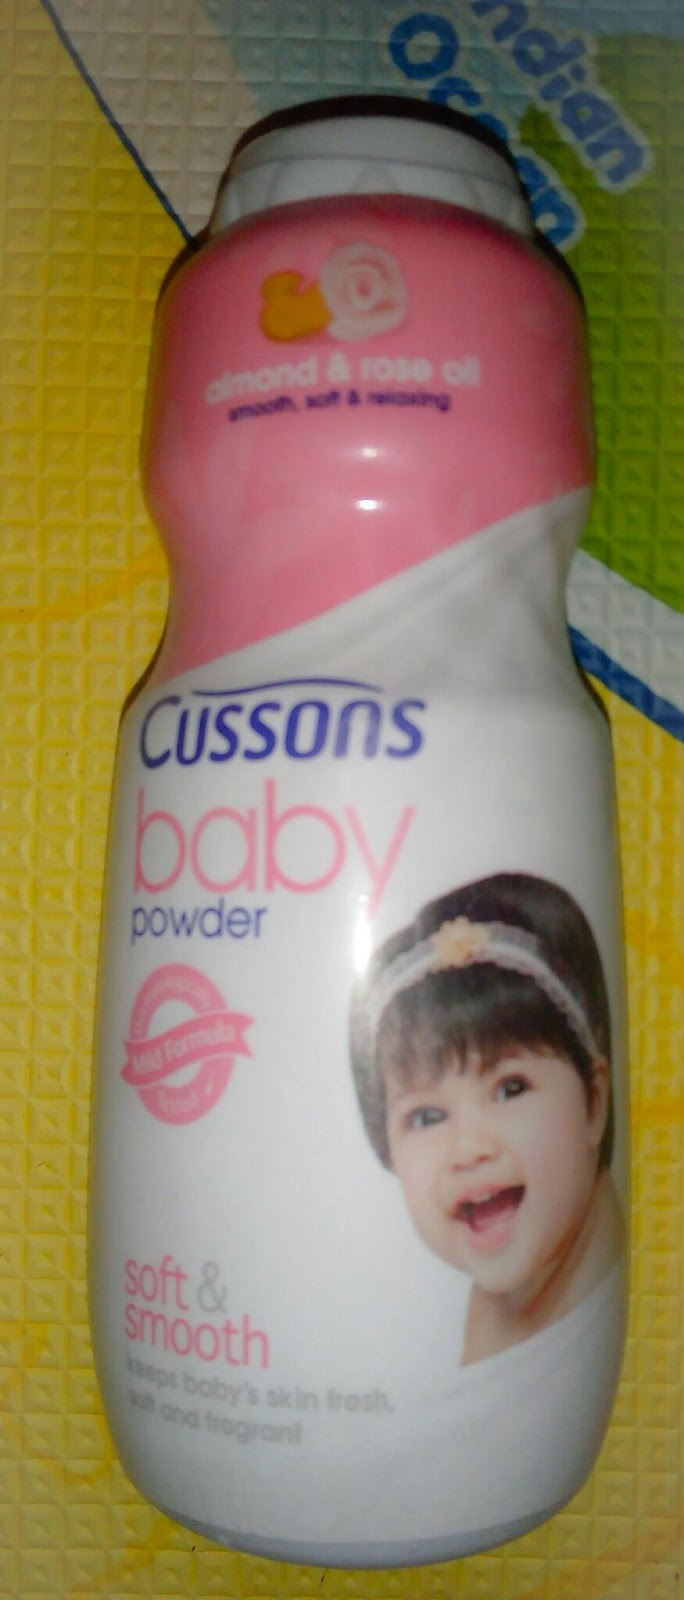 Cussons Baby Gift Pack Product Review Diary Of An Abuja Mom Cream Blue Hope You Enjoyed This Post Please Dont Forget To Share And Also Leave Your Comment In The Box Join Our Facebook Group Housewives